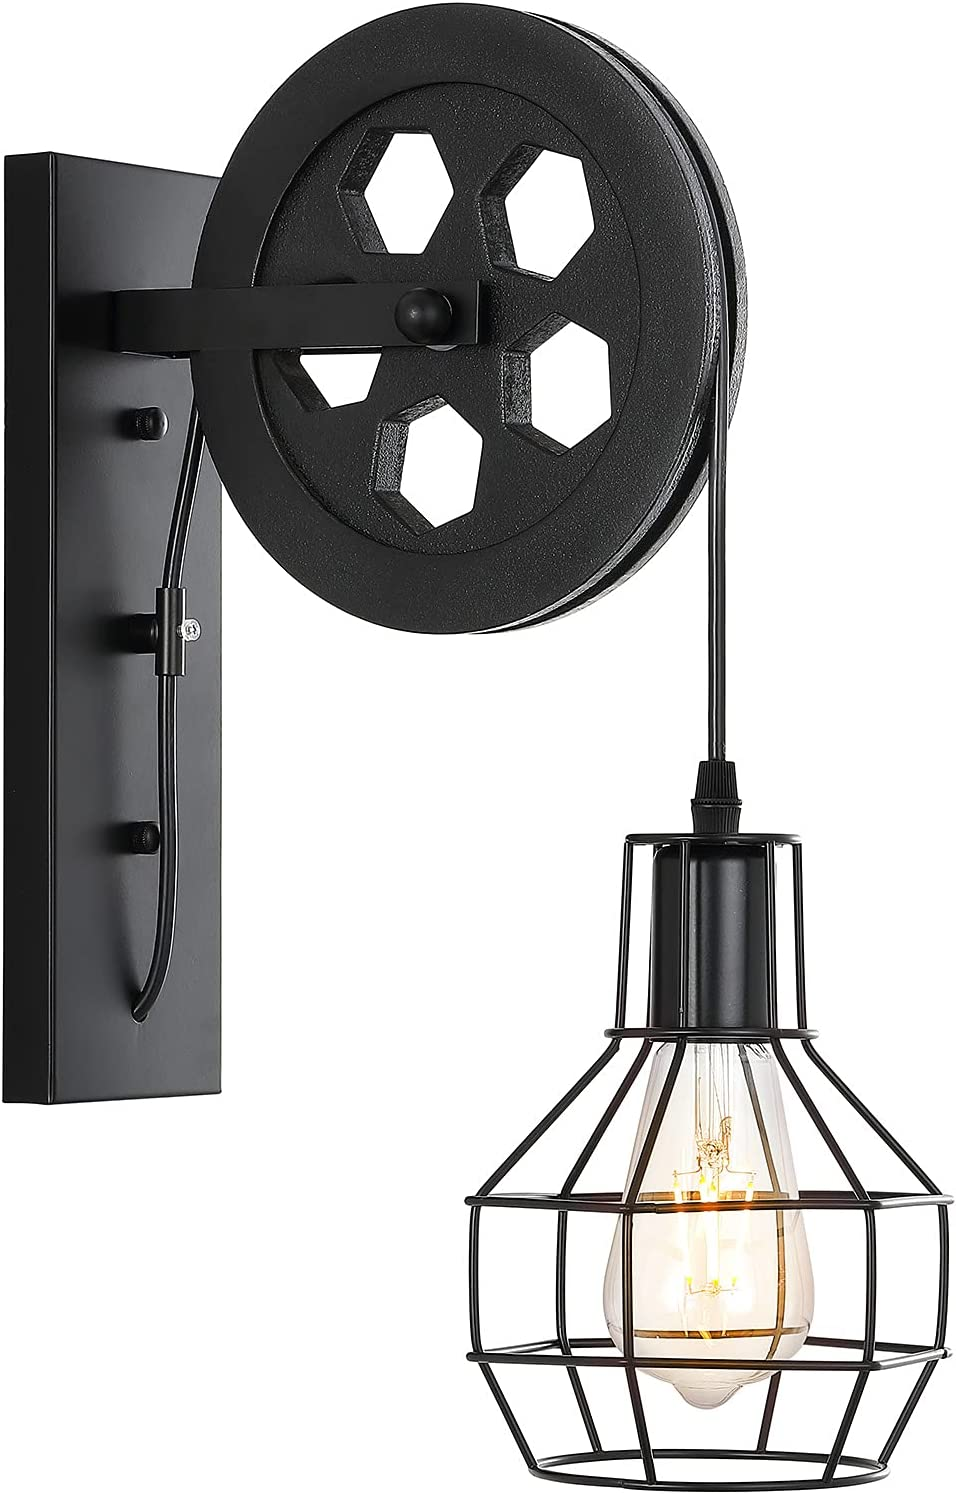 BAODEN 1-Light Rustic Wall Light Lift Pulley with Matte Iron Cage Lampshade Industrial Mid Century Sconce for Indoor Lighting Barn Restaurant (Black Color)